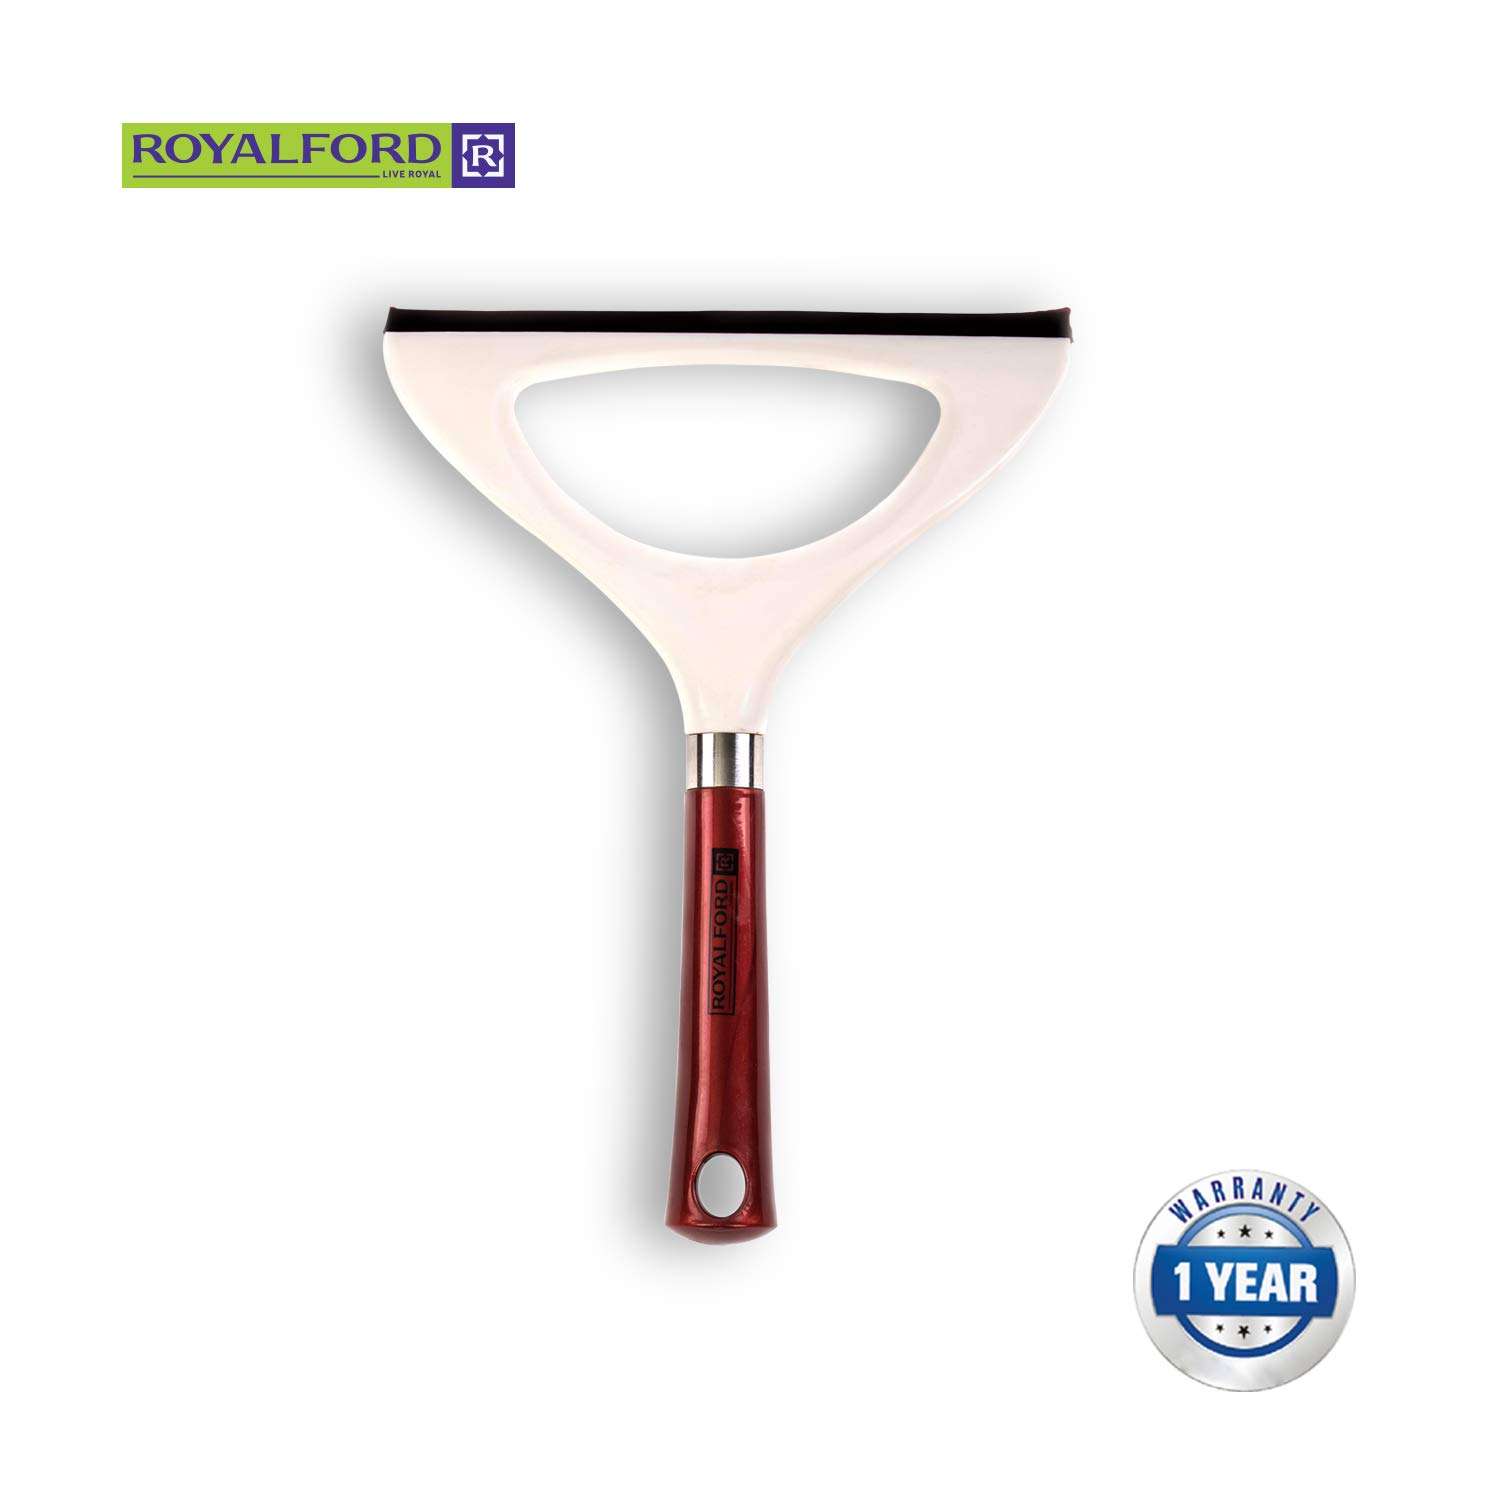 Royalford Water Wiper, Lightweight and Multi-Coloured Shower Glass Wiper with Flexible Grip